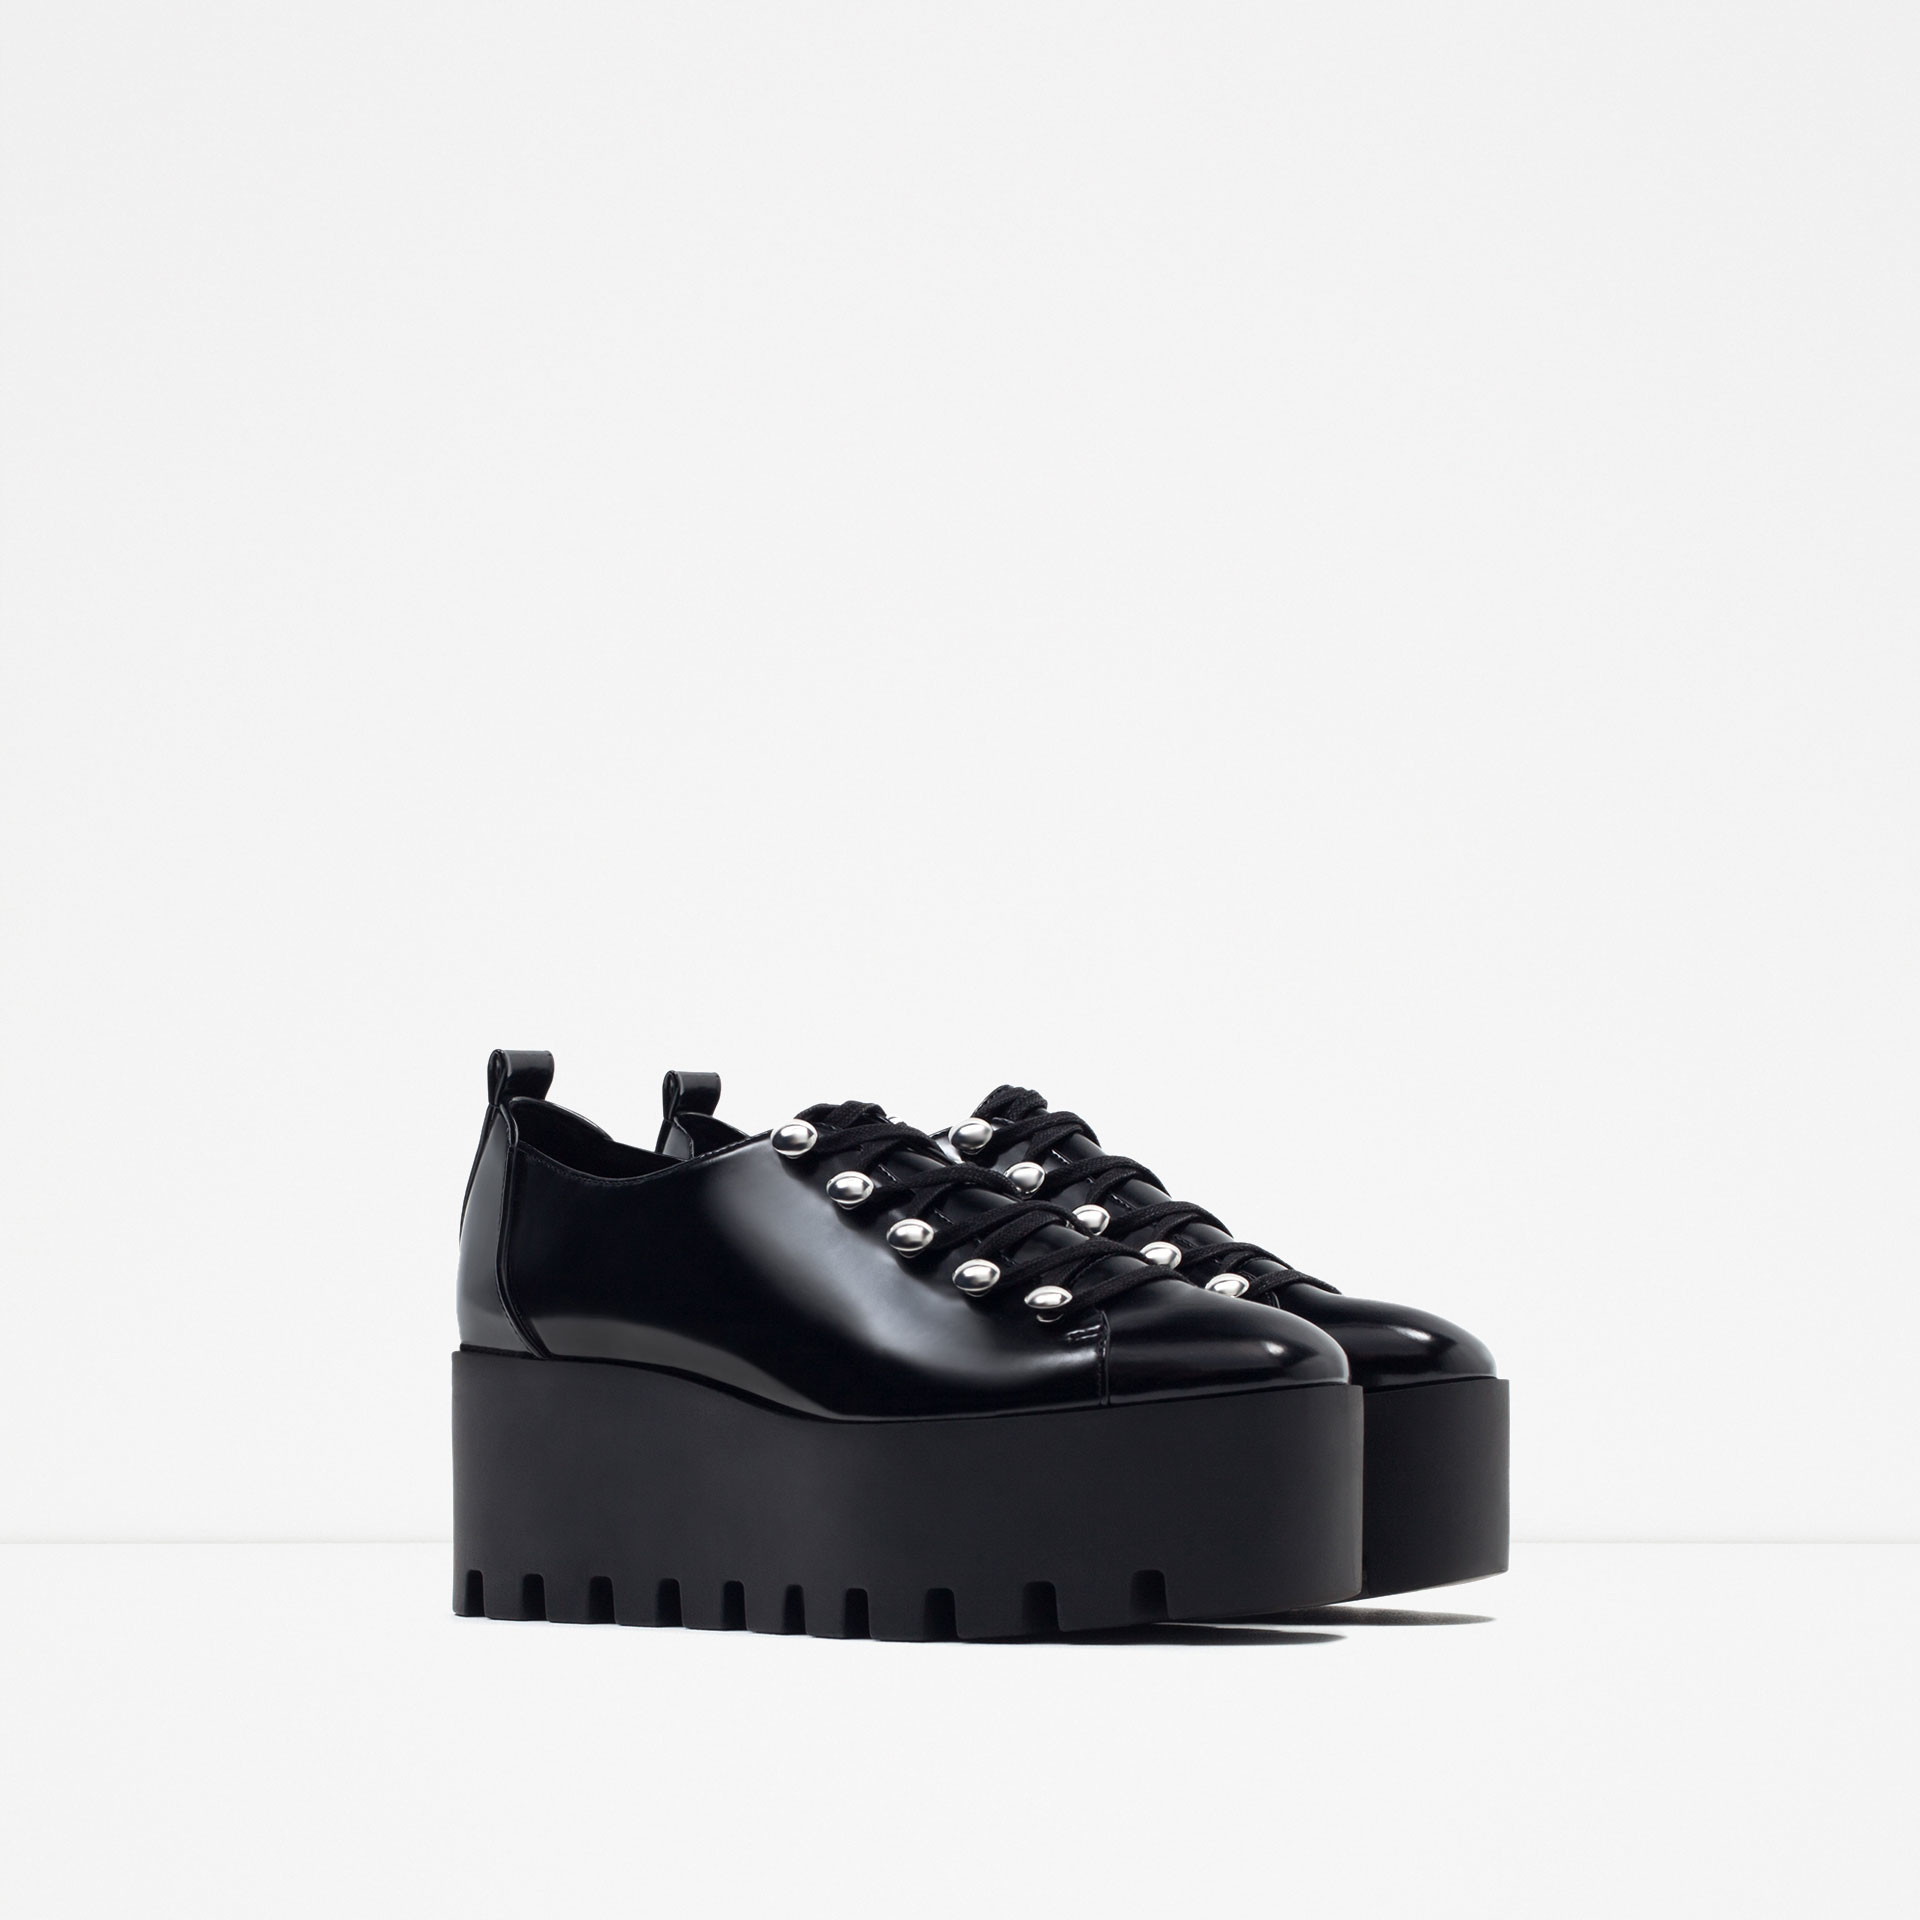 Zara Flat Platform Shoes in Black | Lyst